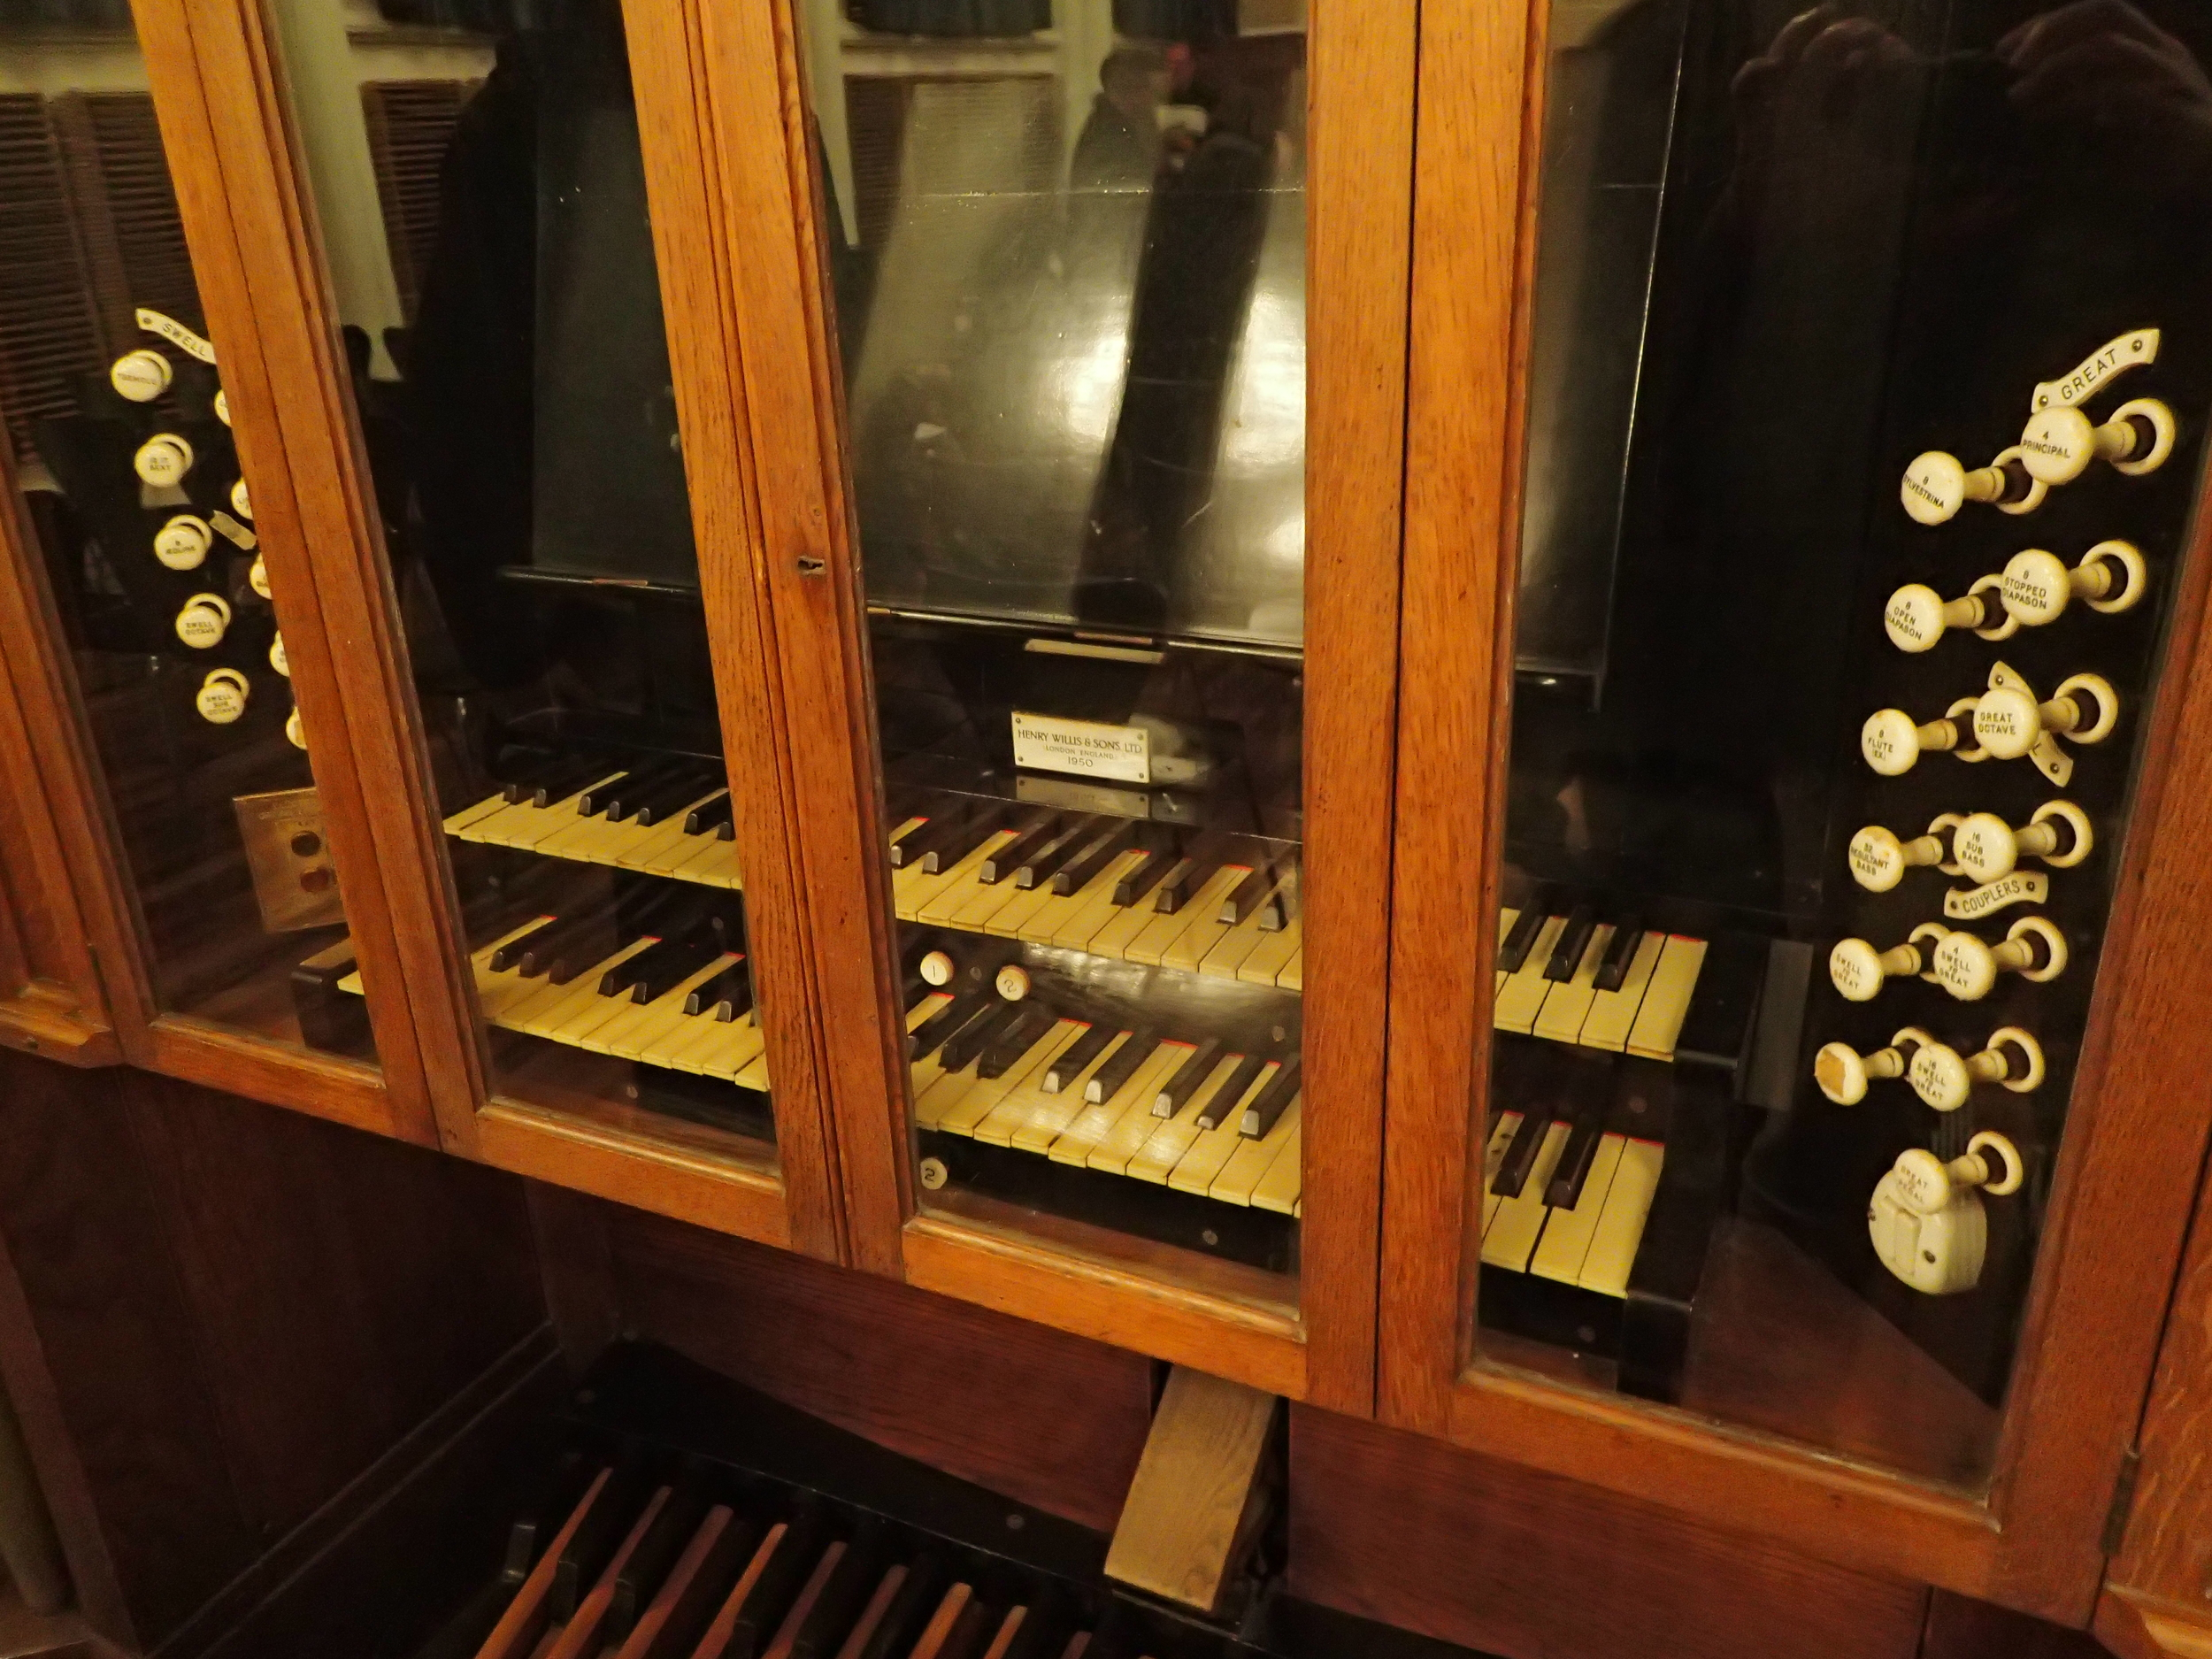 Willis organ in the Robert Samut Hall. Not well maintained though.